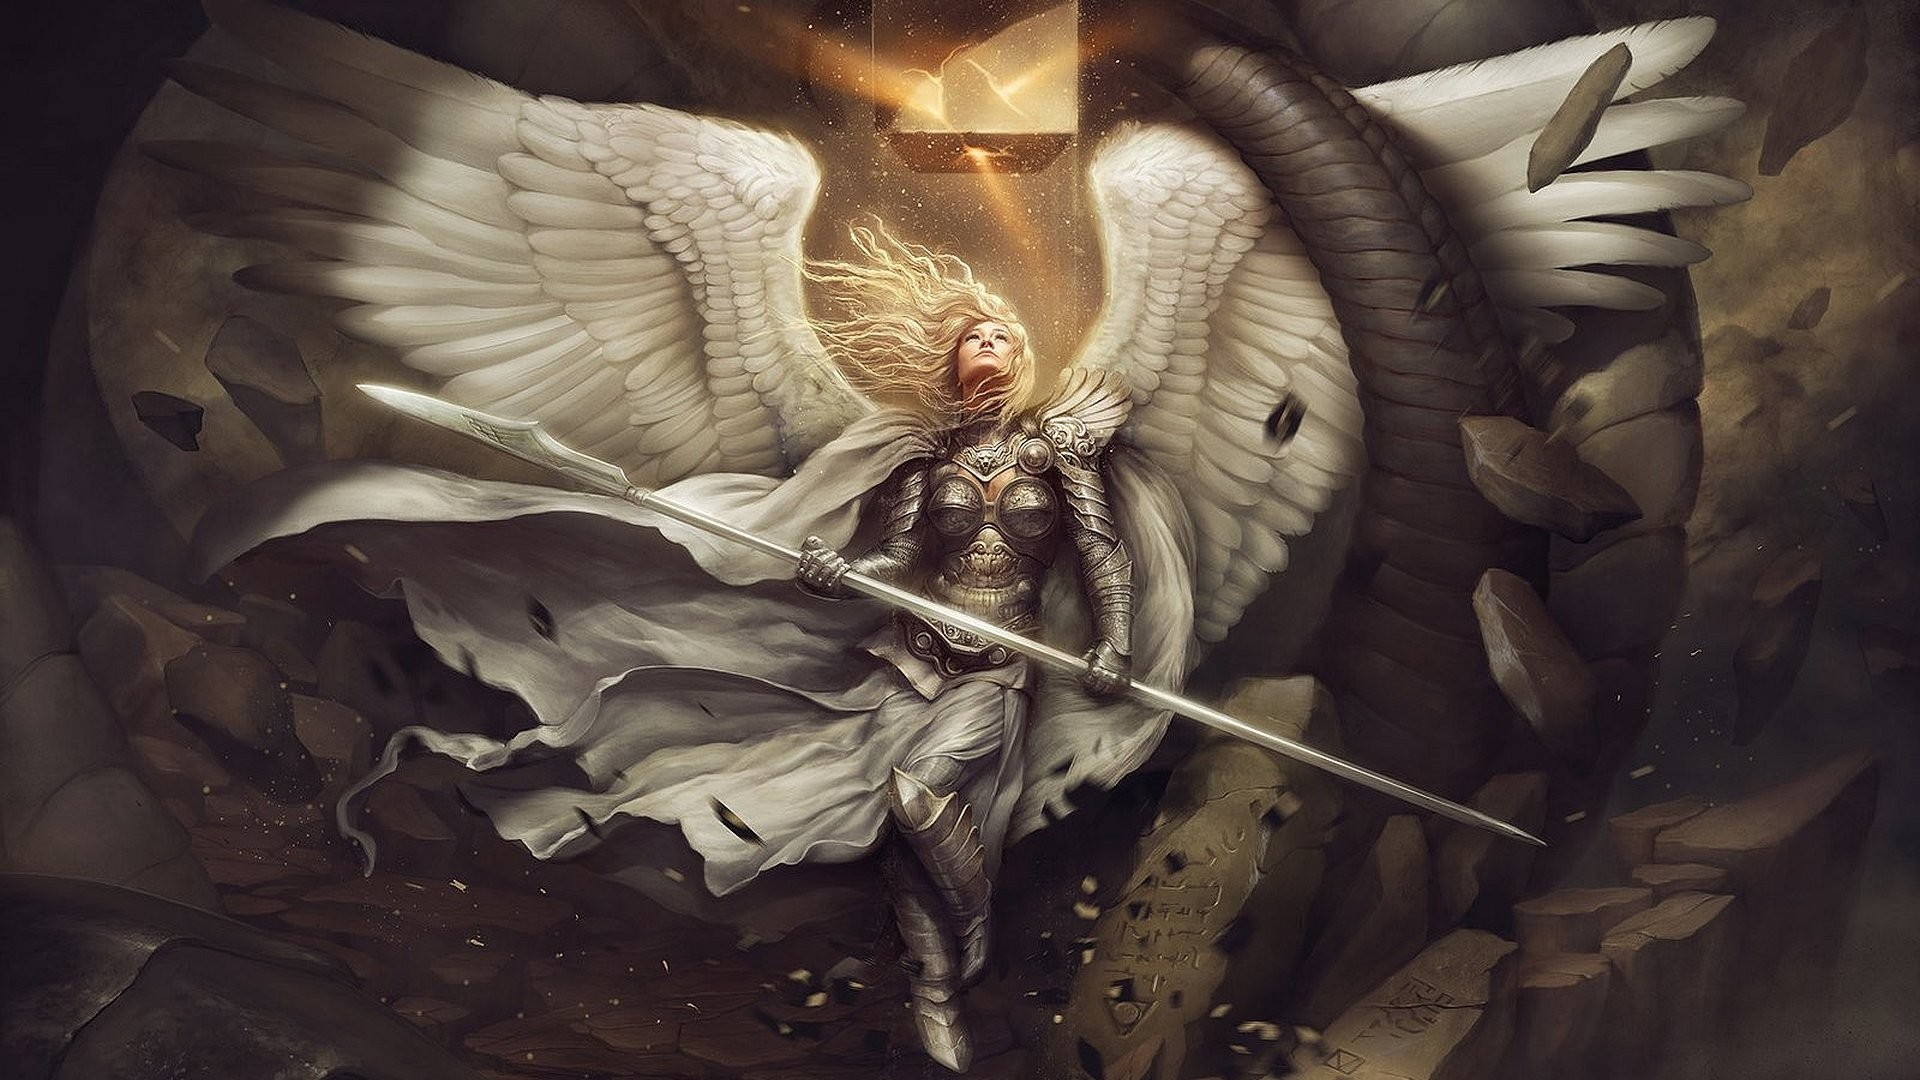 1920x1080 Angel Warrior Wing free iPhone or Android Full HD wallpaper.